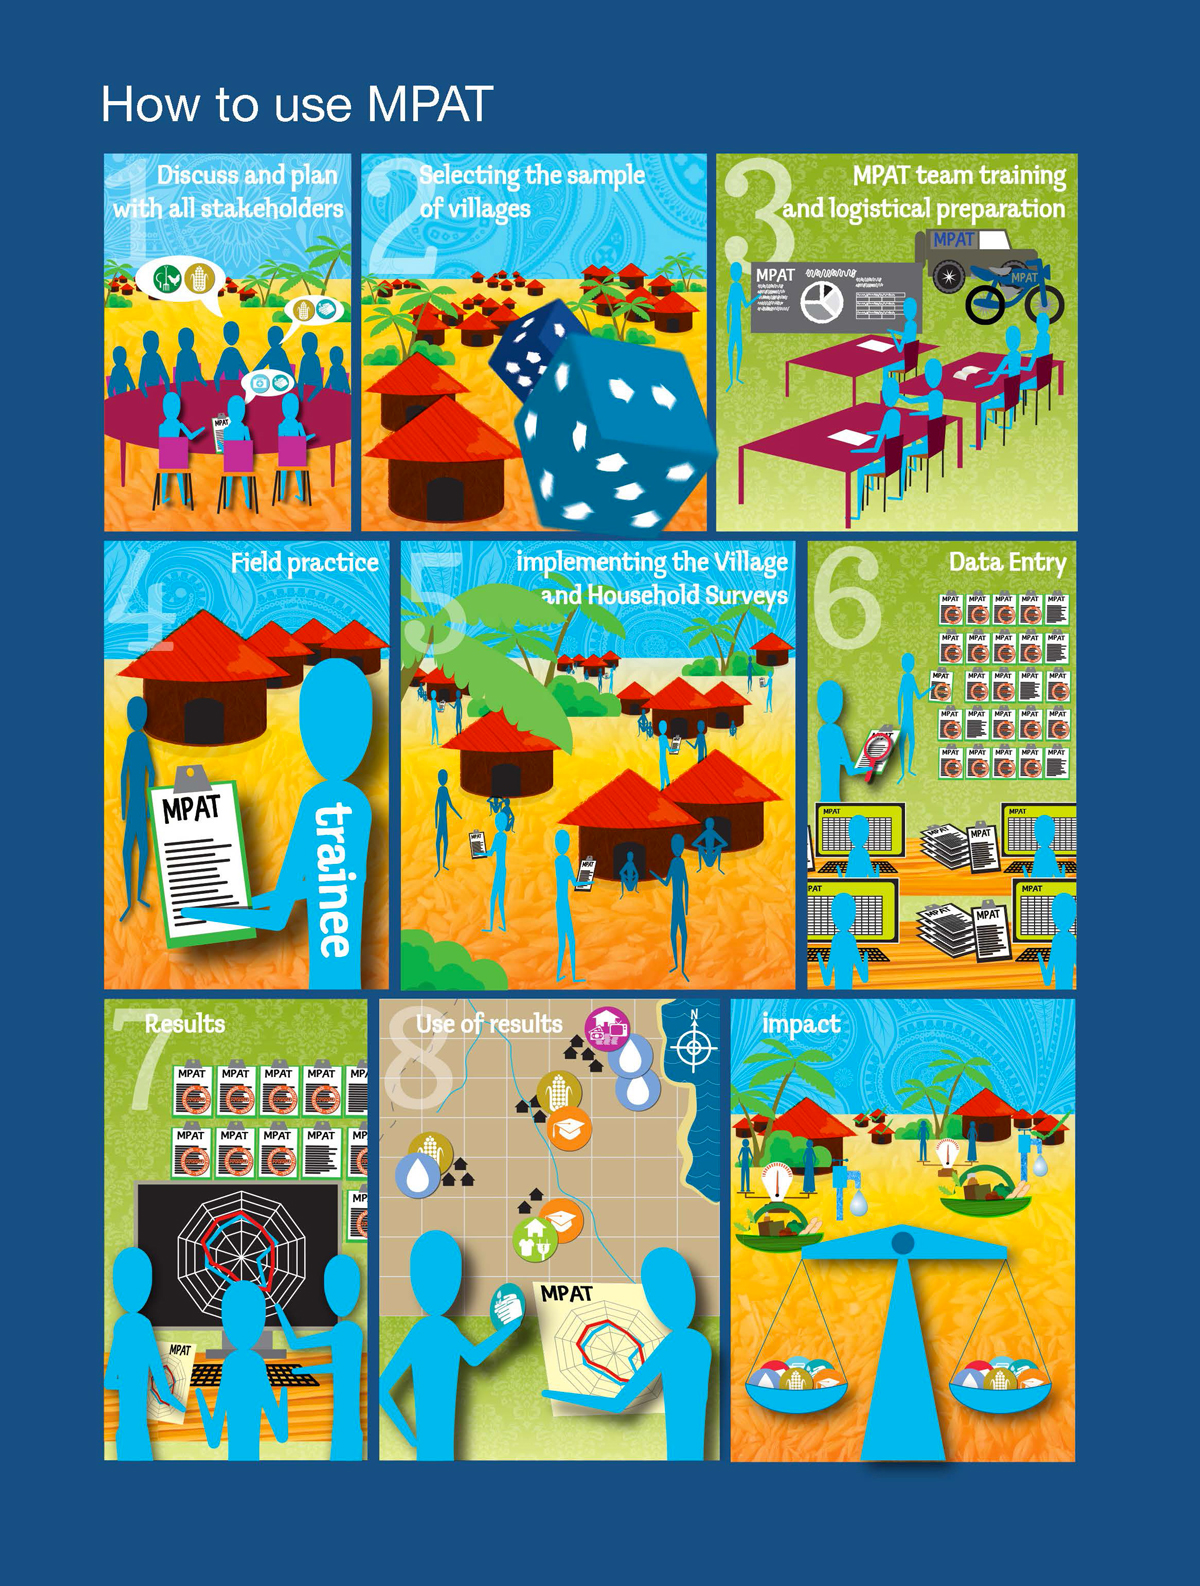 IFAD-MPAT-(2014)-Info-graphic—How-to-use-MPAT